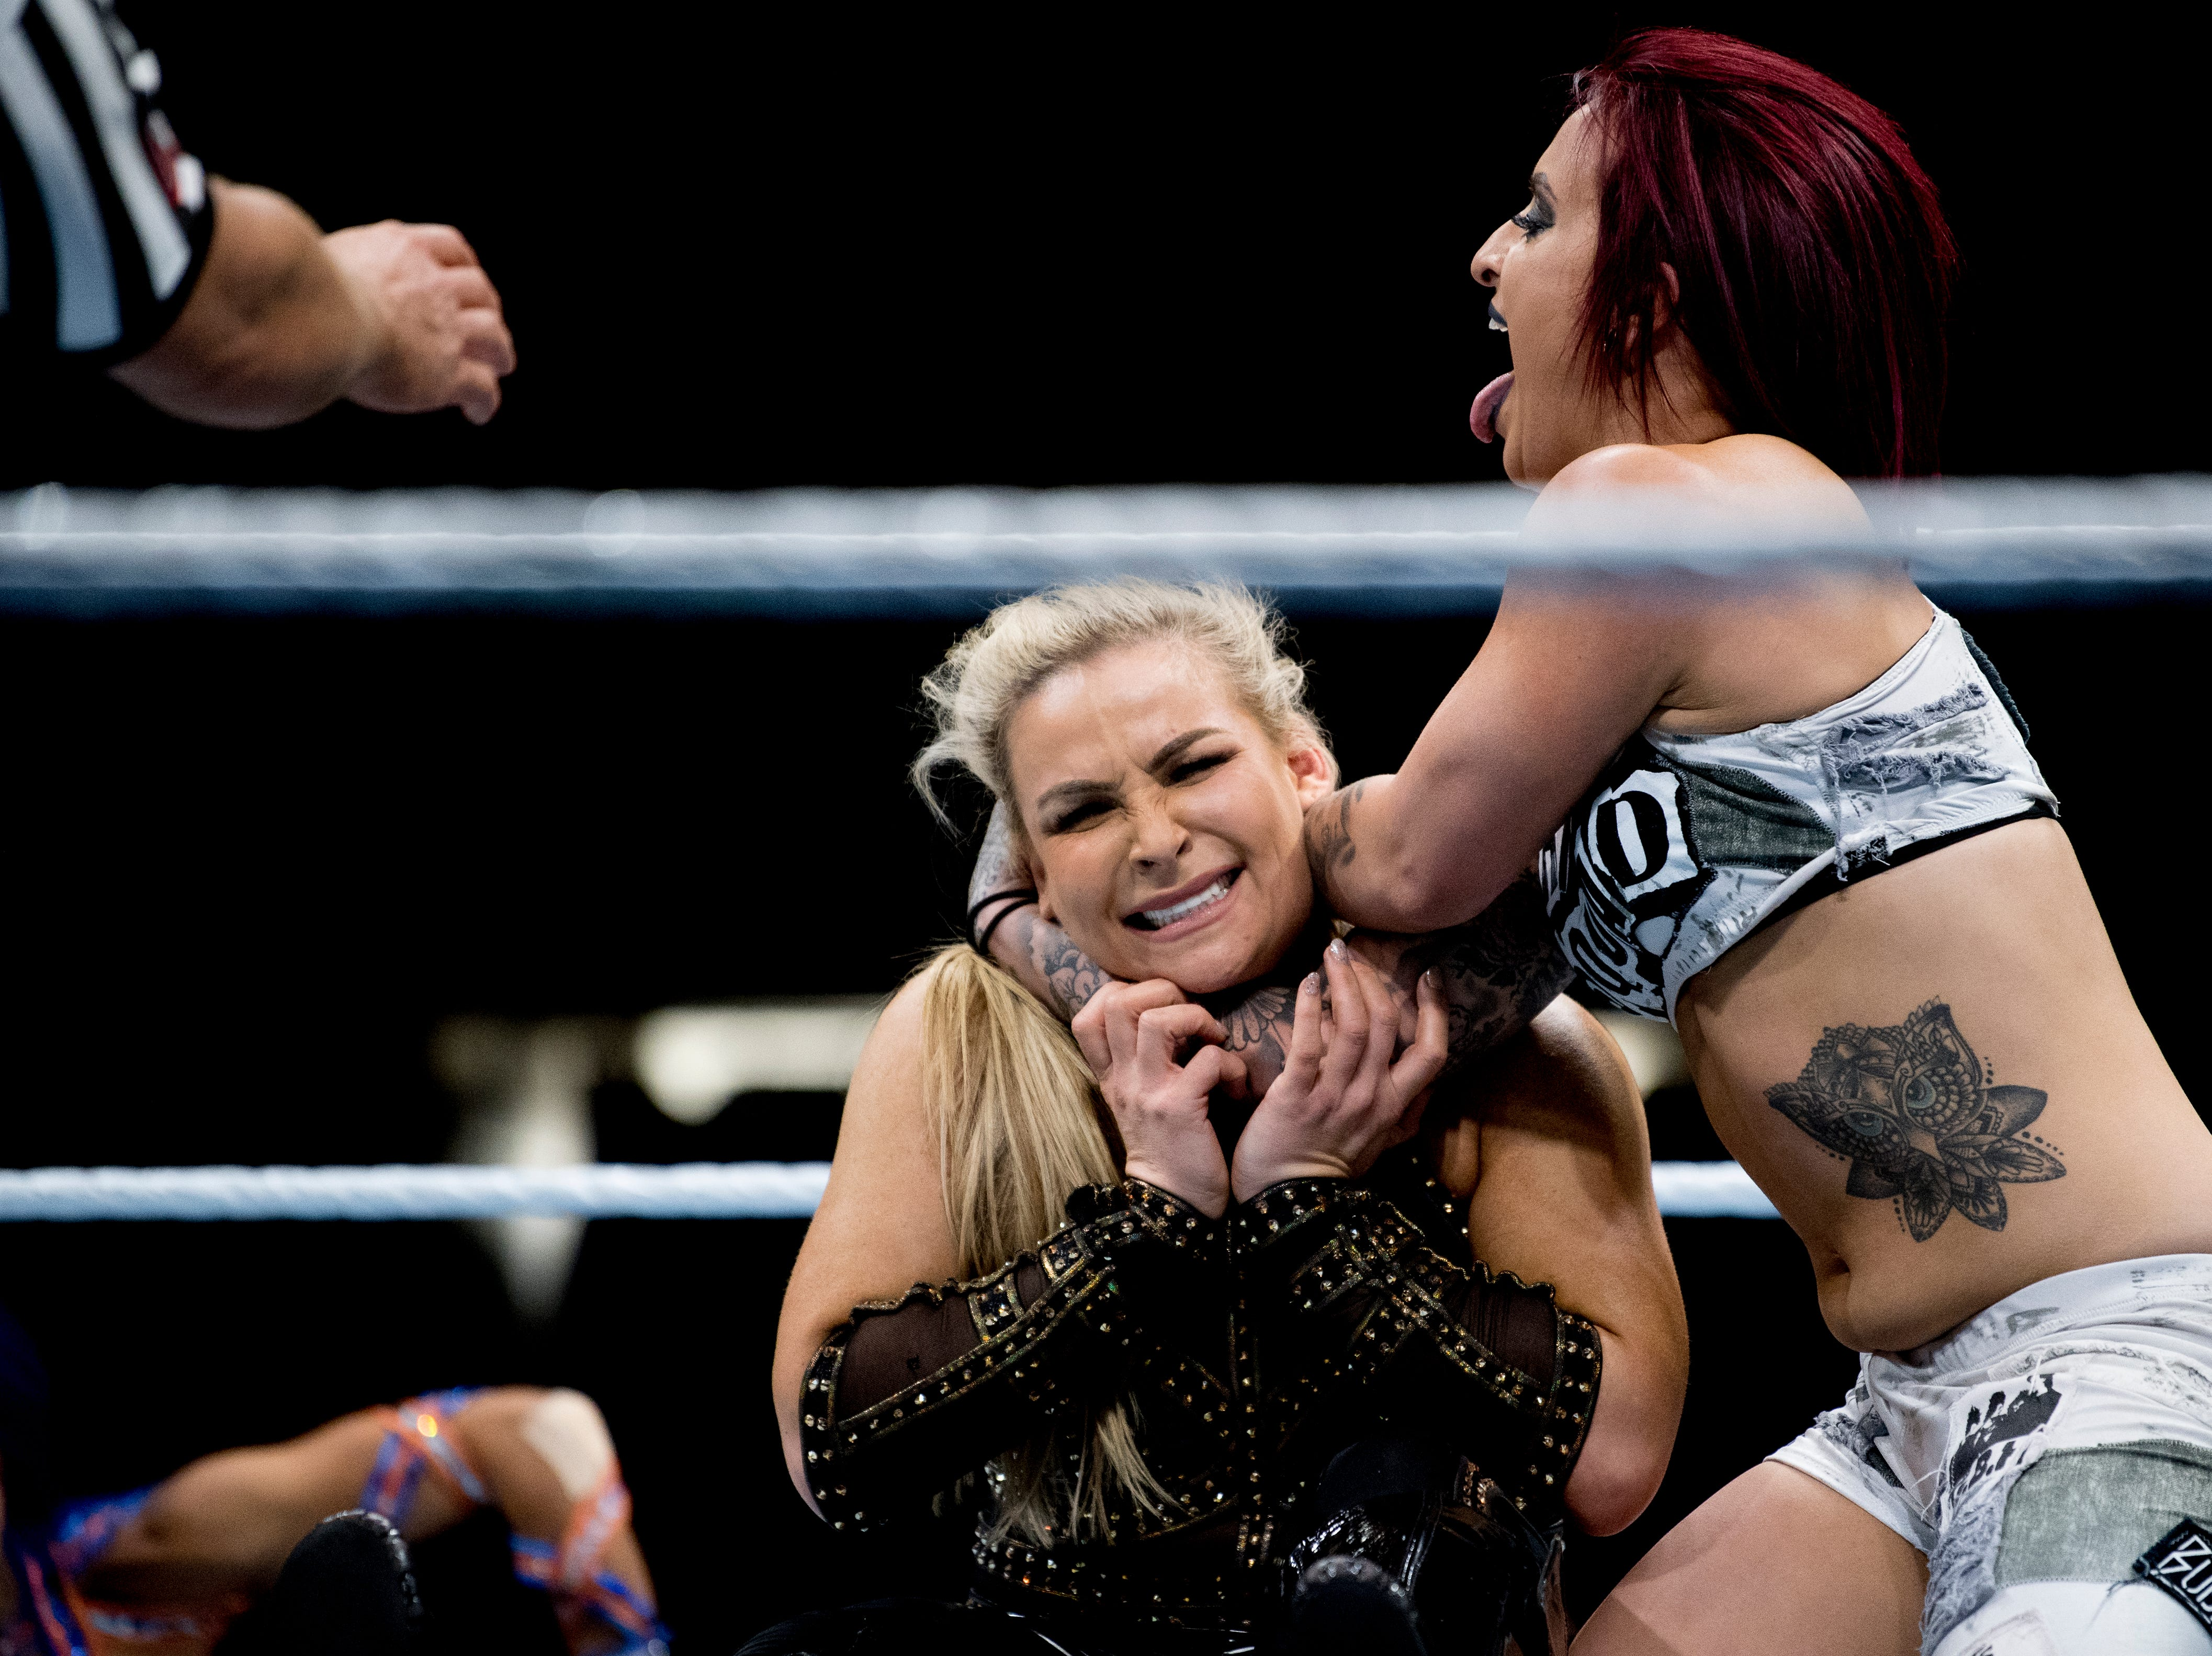 Ruby Riott wrestles Natalya during a WWE Live performance at the Knoxville Civic Coliseum in Knoxville, Tennessee on Saturday, January 12, 2019. *KNOXVILLE NEWS SENTINEL USE ONLY*